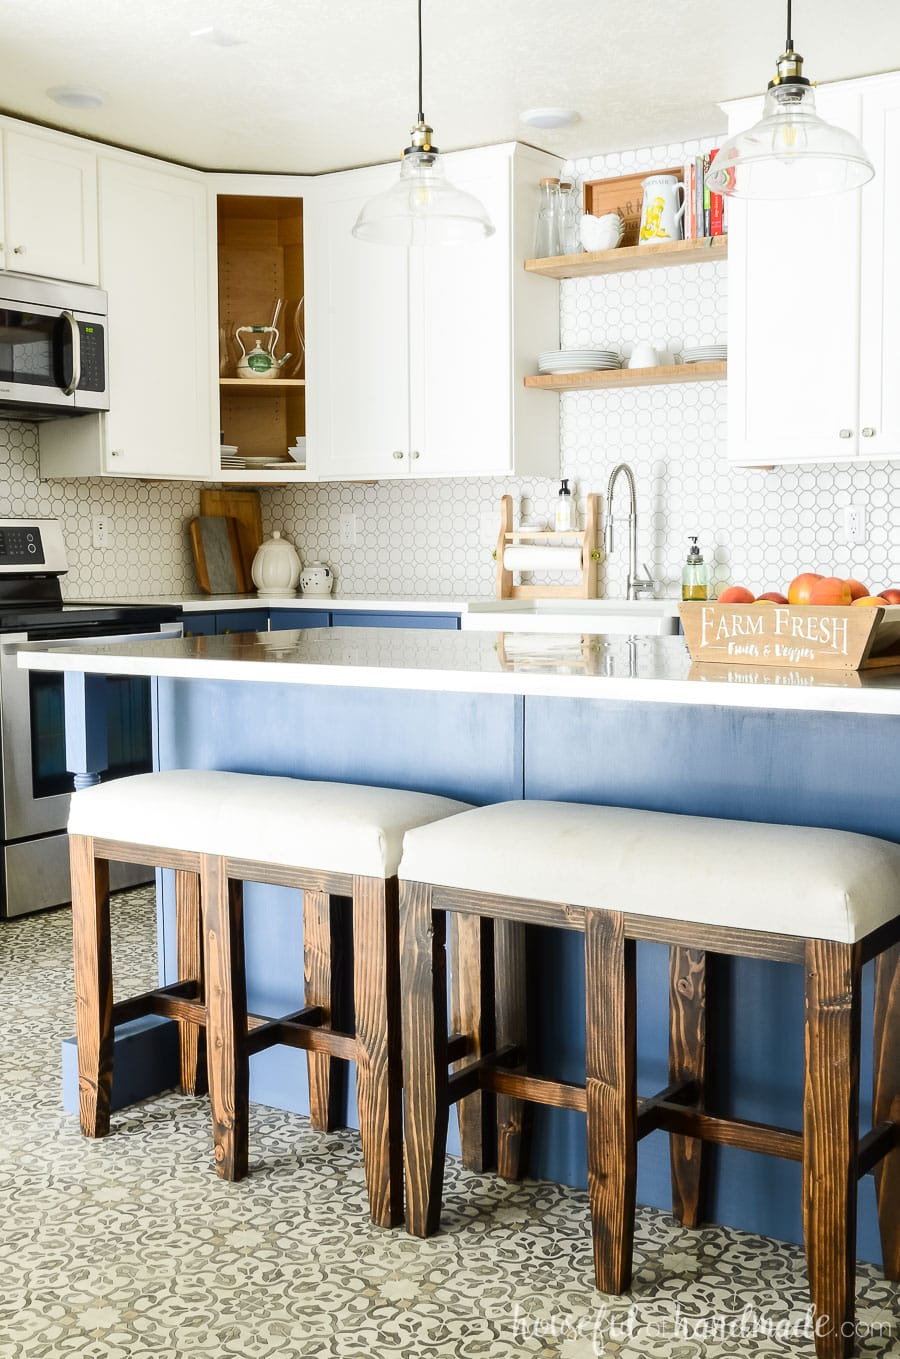 Blue farmhouse kitchen island with bar stool benches at it. White two tone kitchen cabinets in the background.